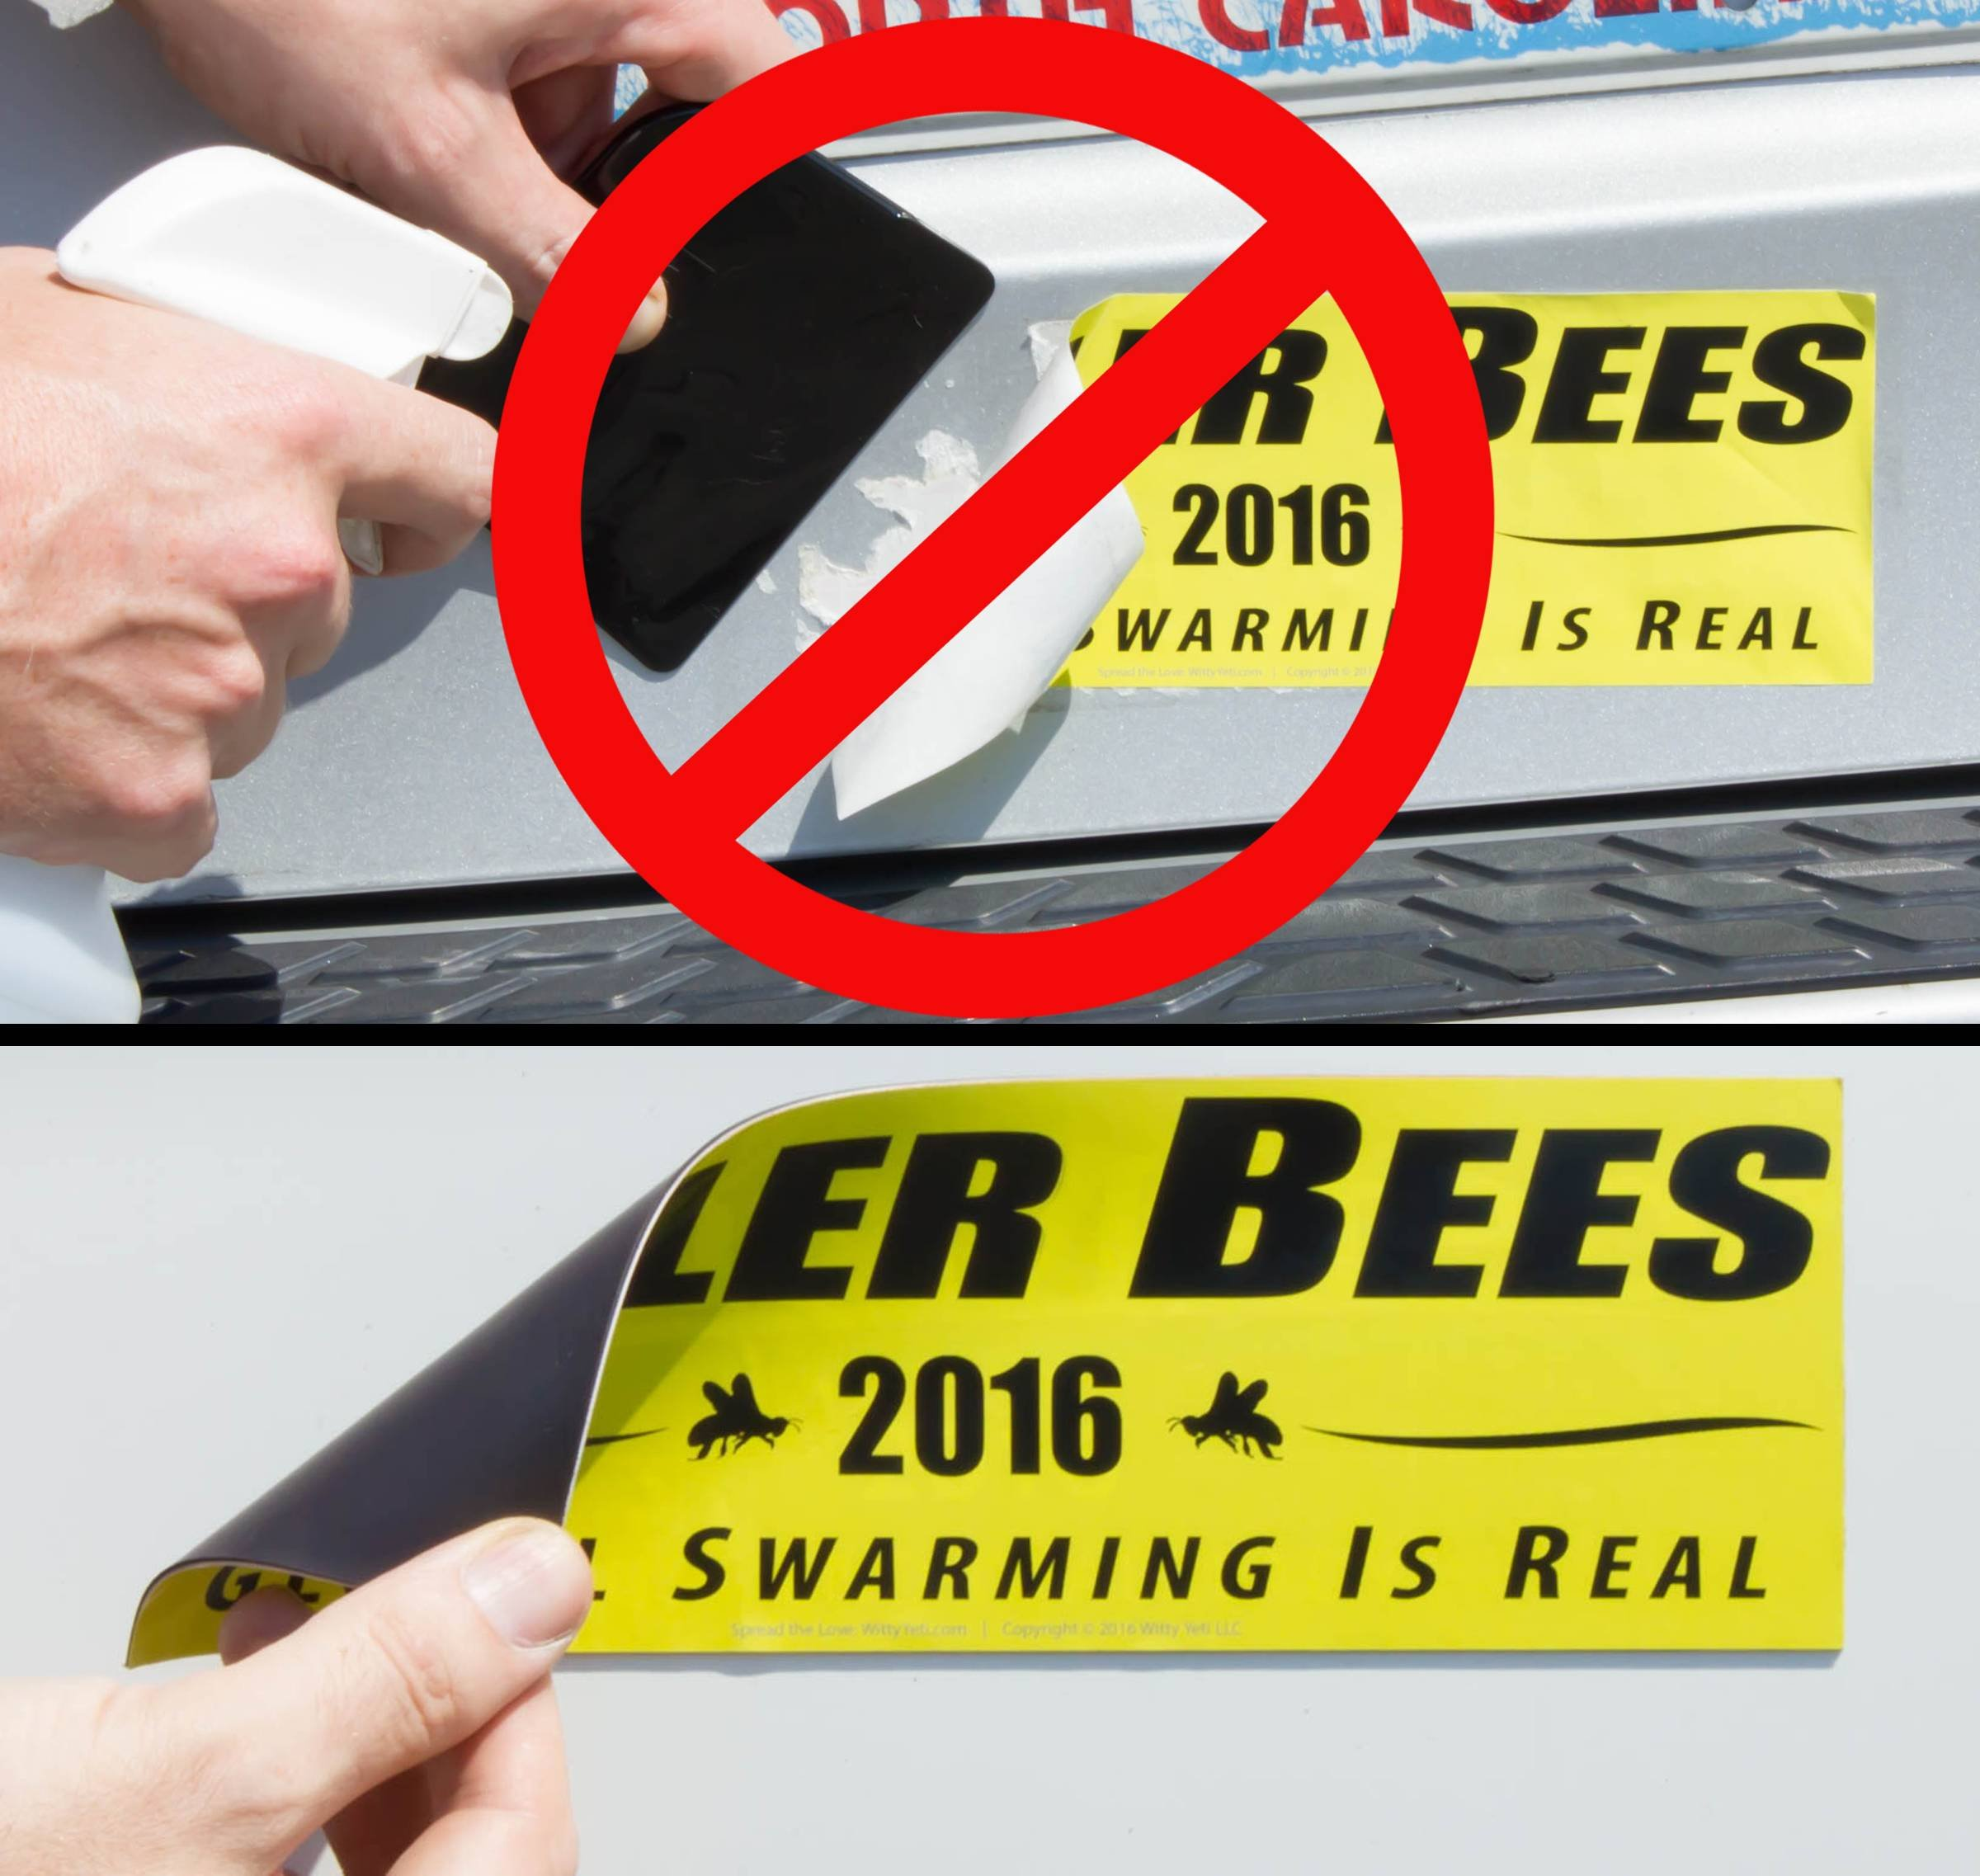 Cut-to-Size Bumper Sticker Magnetizer 10 Pack: Turn Any Decal Into a Strong Magnet. Durable & Weatherproof Magnetic Strip Protects Paint & Allows for Easy Swap. Flexible 4x12 Sheet Guaranteed to Stick by CarSignia (Image #2)